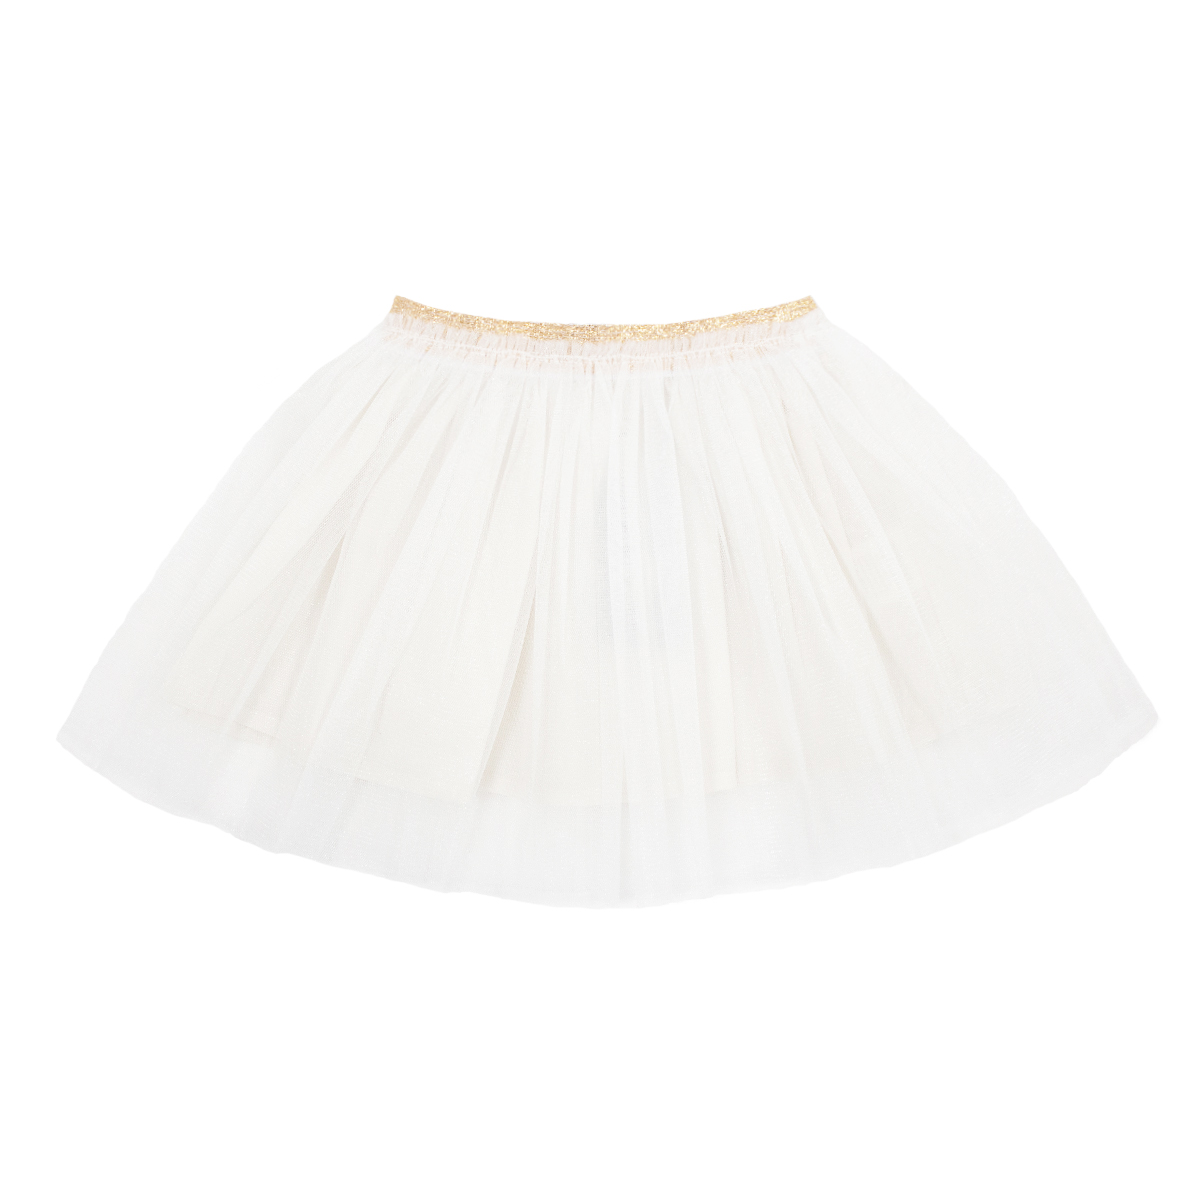 Petite Hailey Tutu Skirt in Ivory